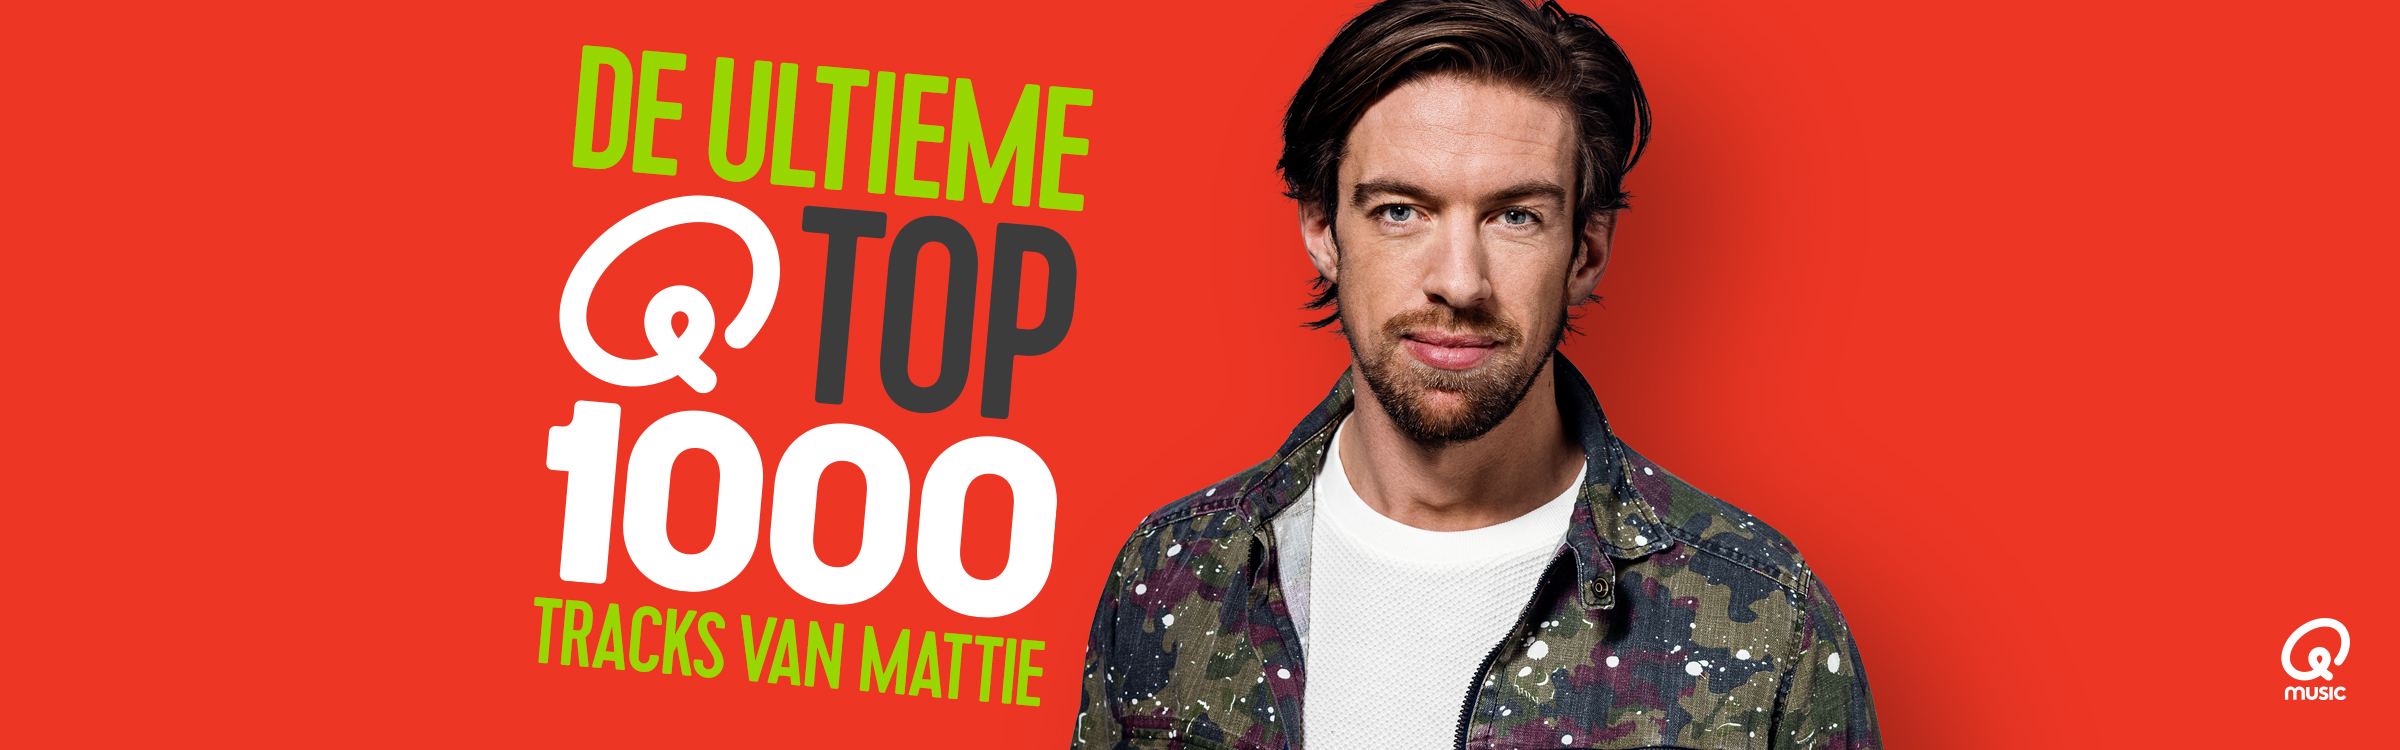 Qmusic actionheader qtop1000 dj mattie